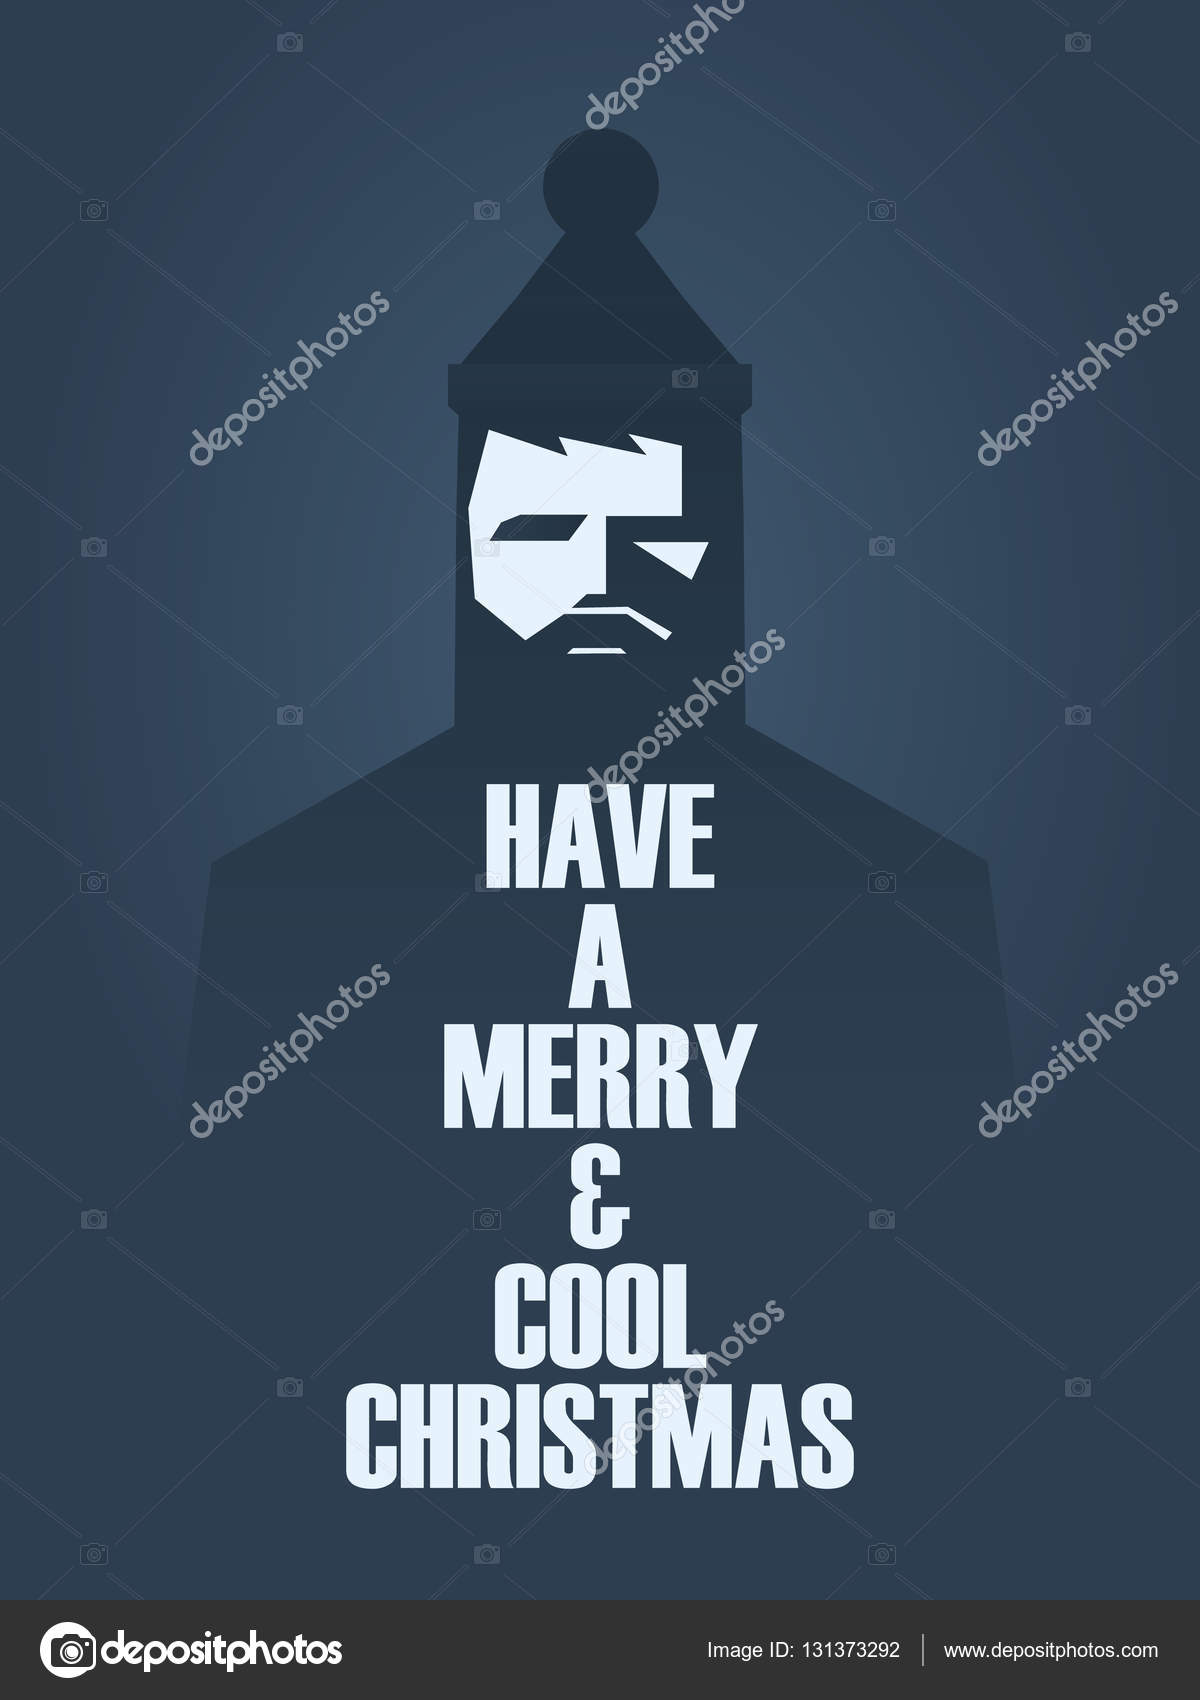 hipster vintage style christmas vector card template with man in hat